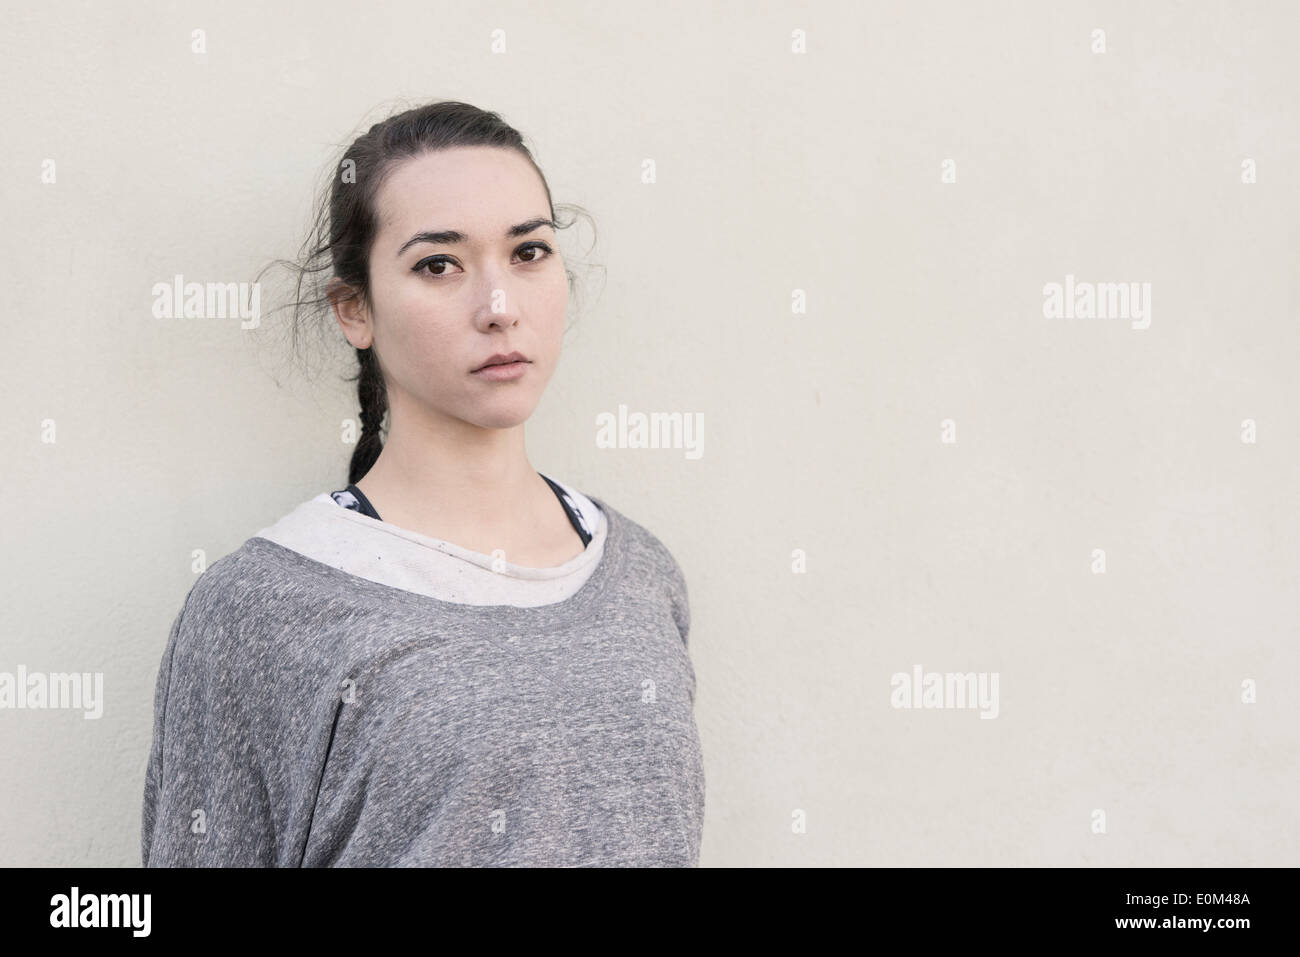 Portrait of young hispanic woman standing in front of wall. Pensive expression and looking at camera. - Stock Image